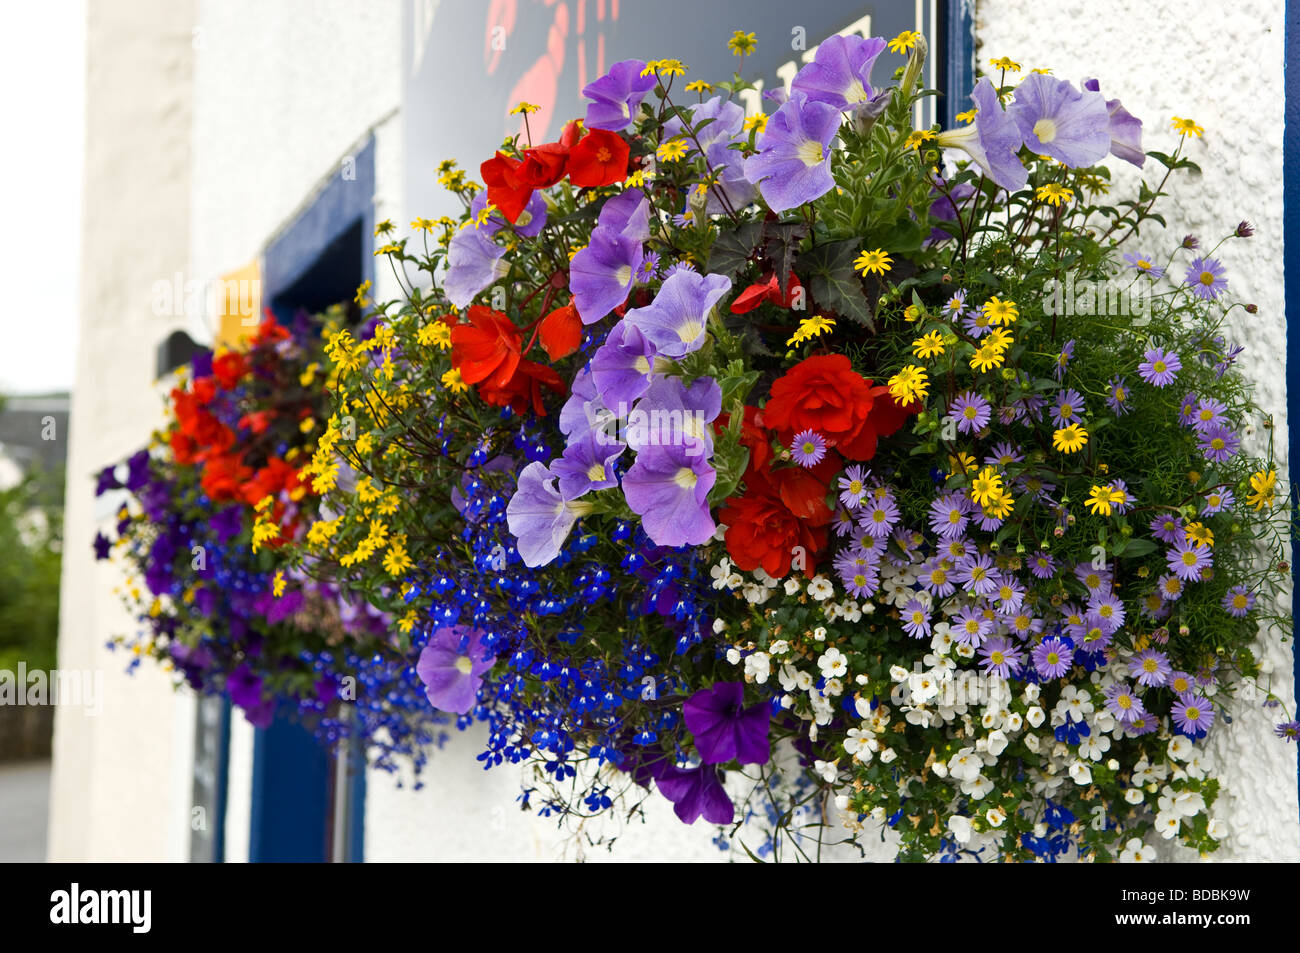 Hanging baskets of flowers - Stock Image